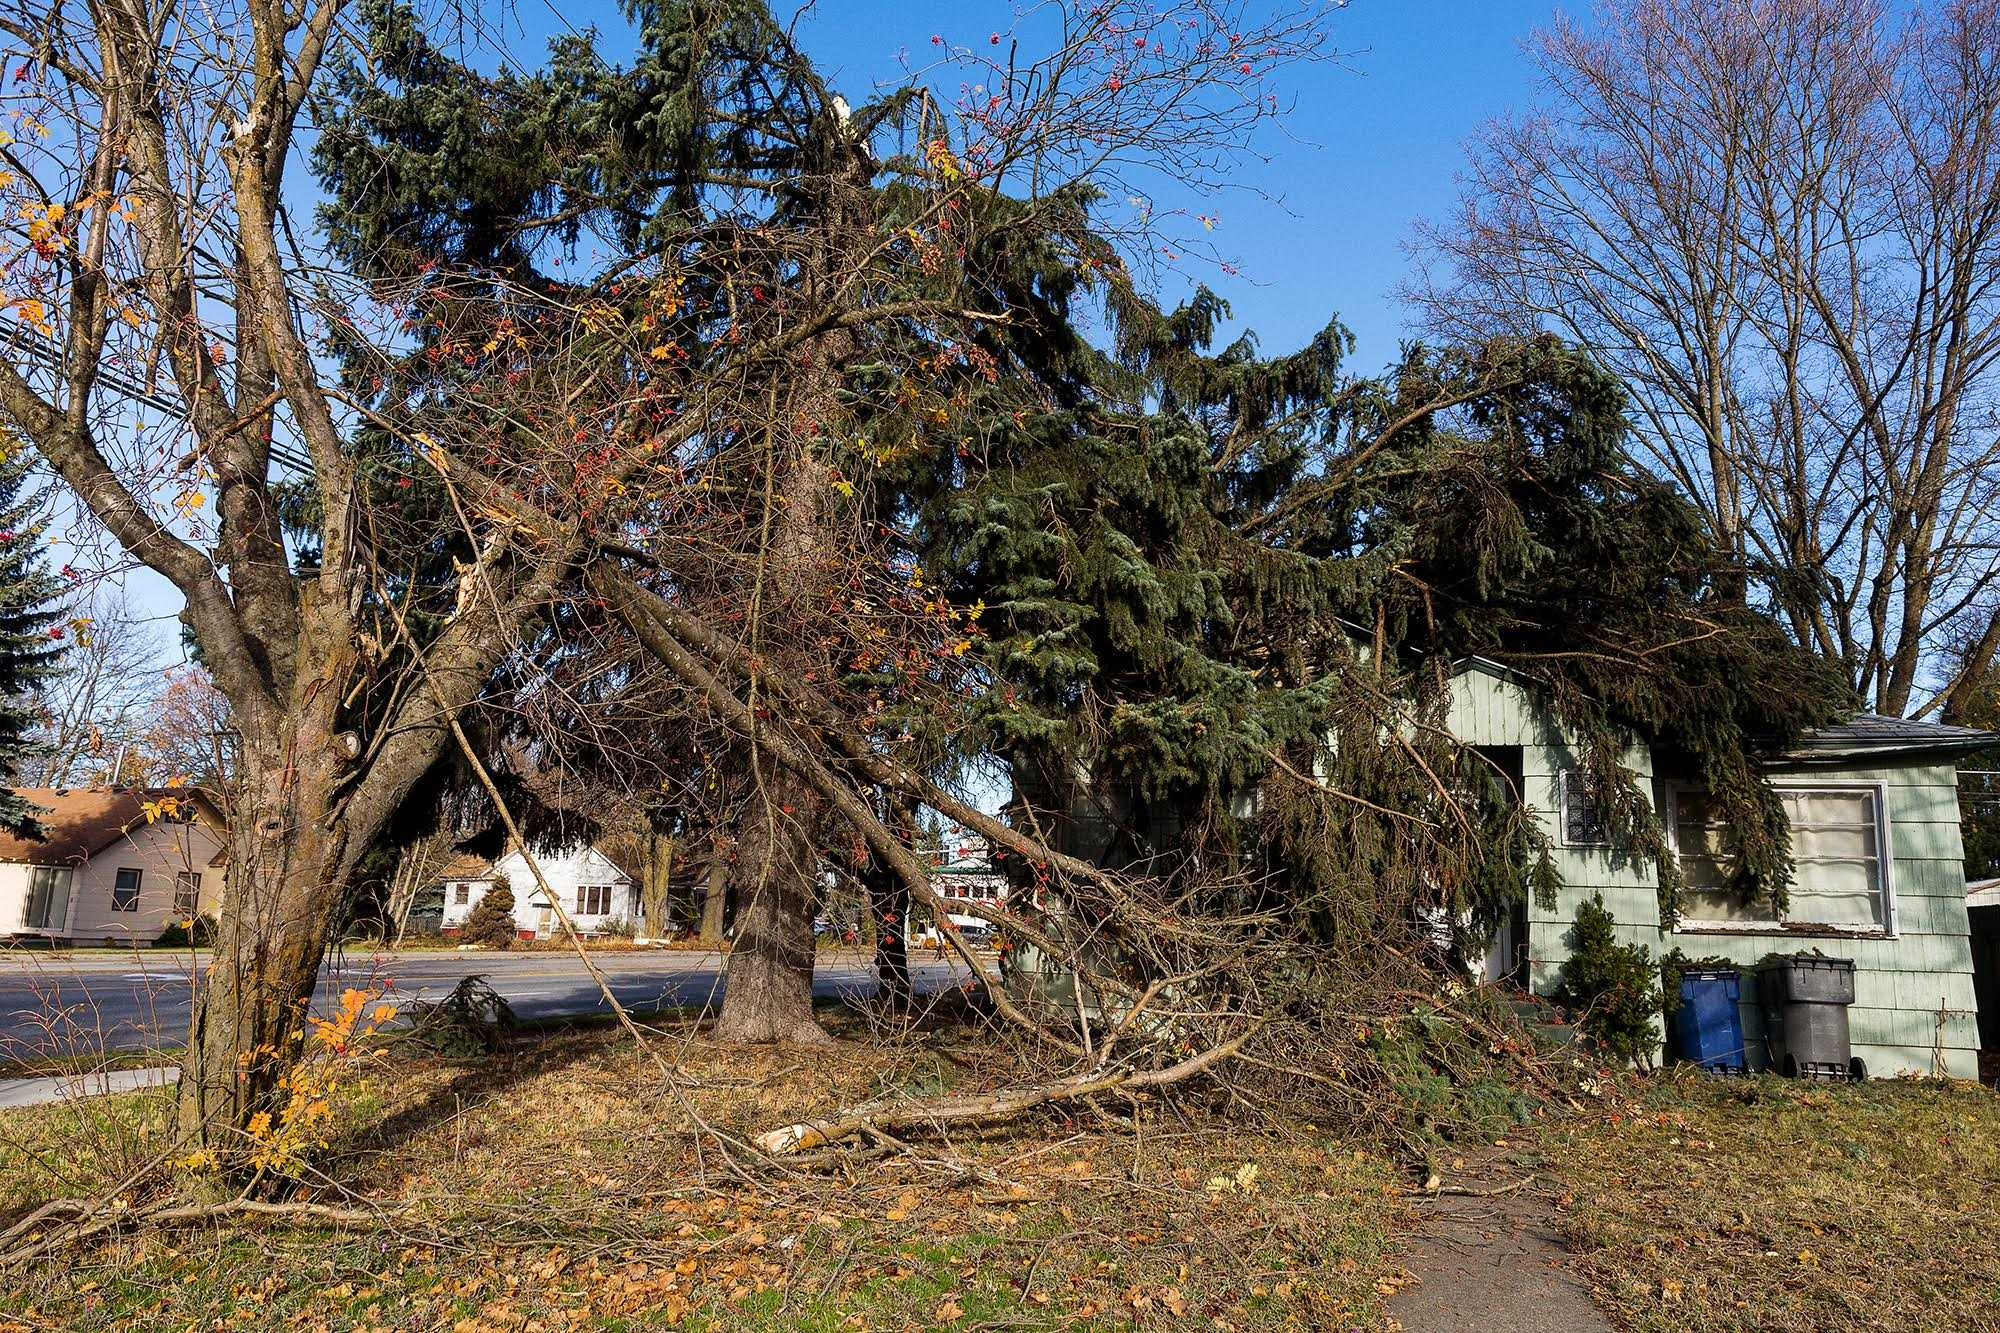 SHAWN GUST/PressTwo trees that had snapped in Tuesday's storm crashed onto a home at 533 W. Linden Avenue.